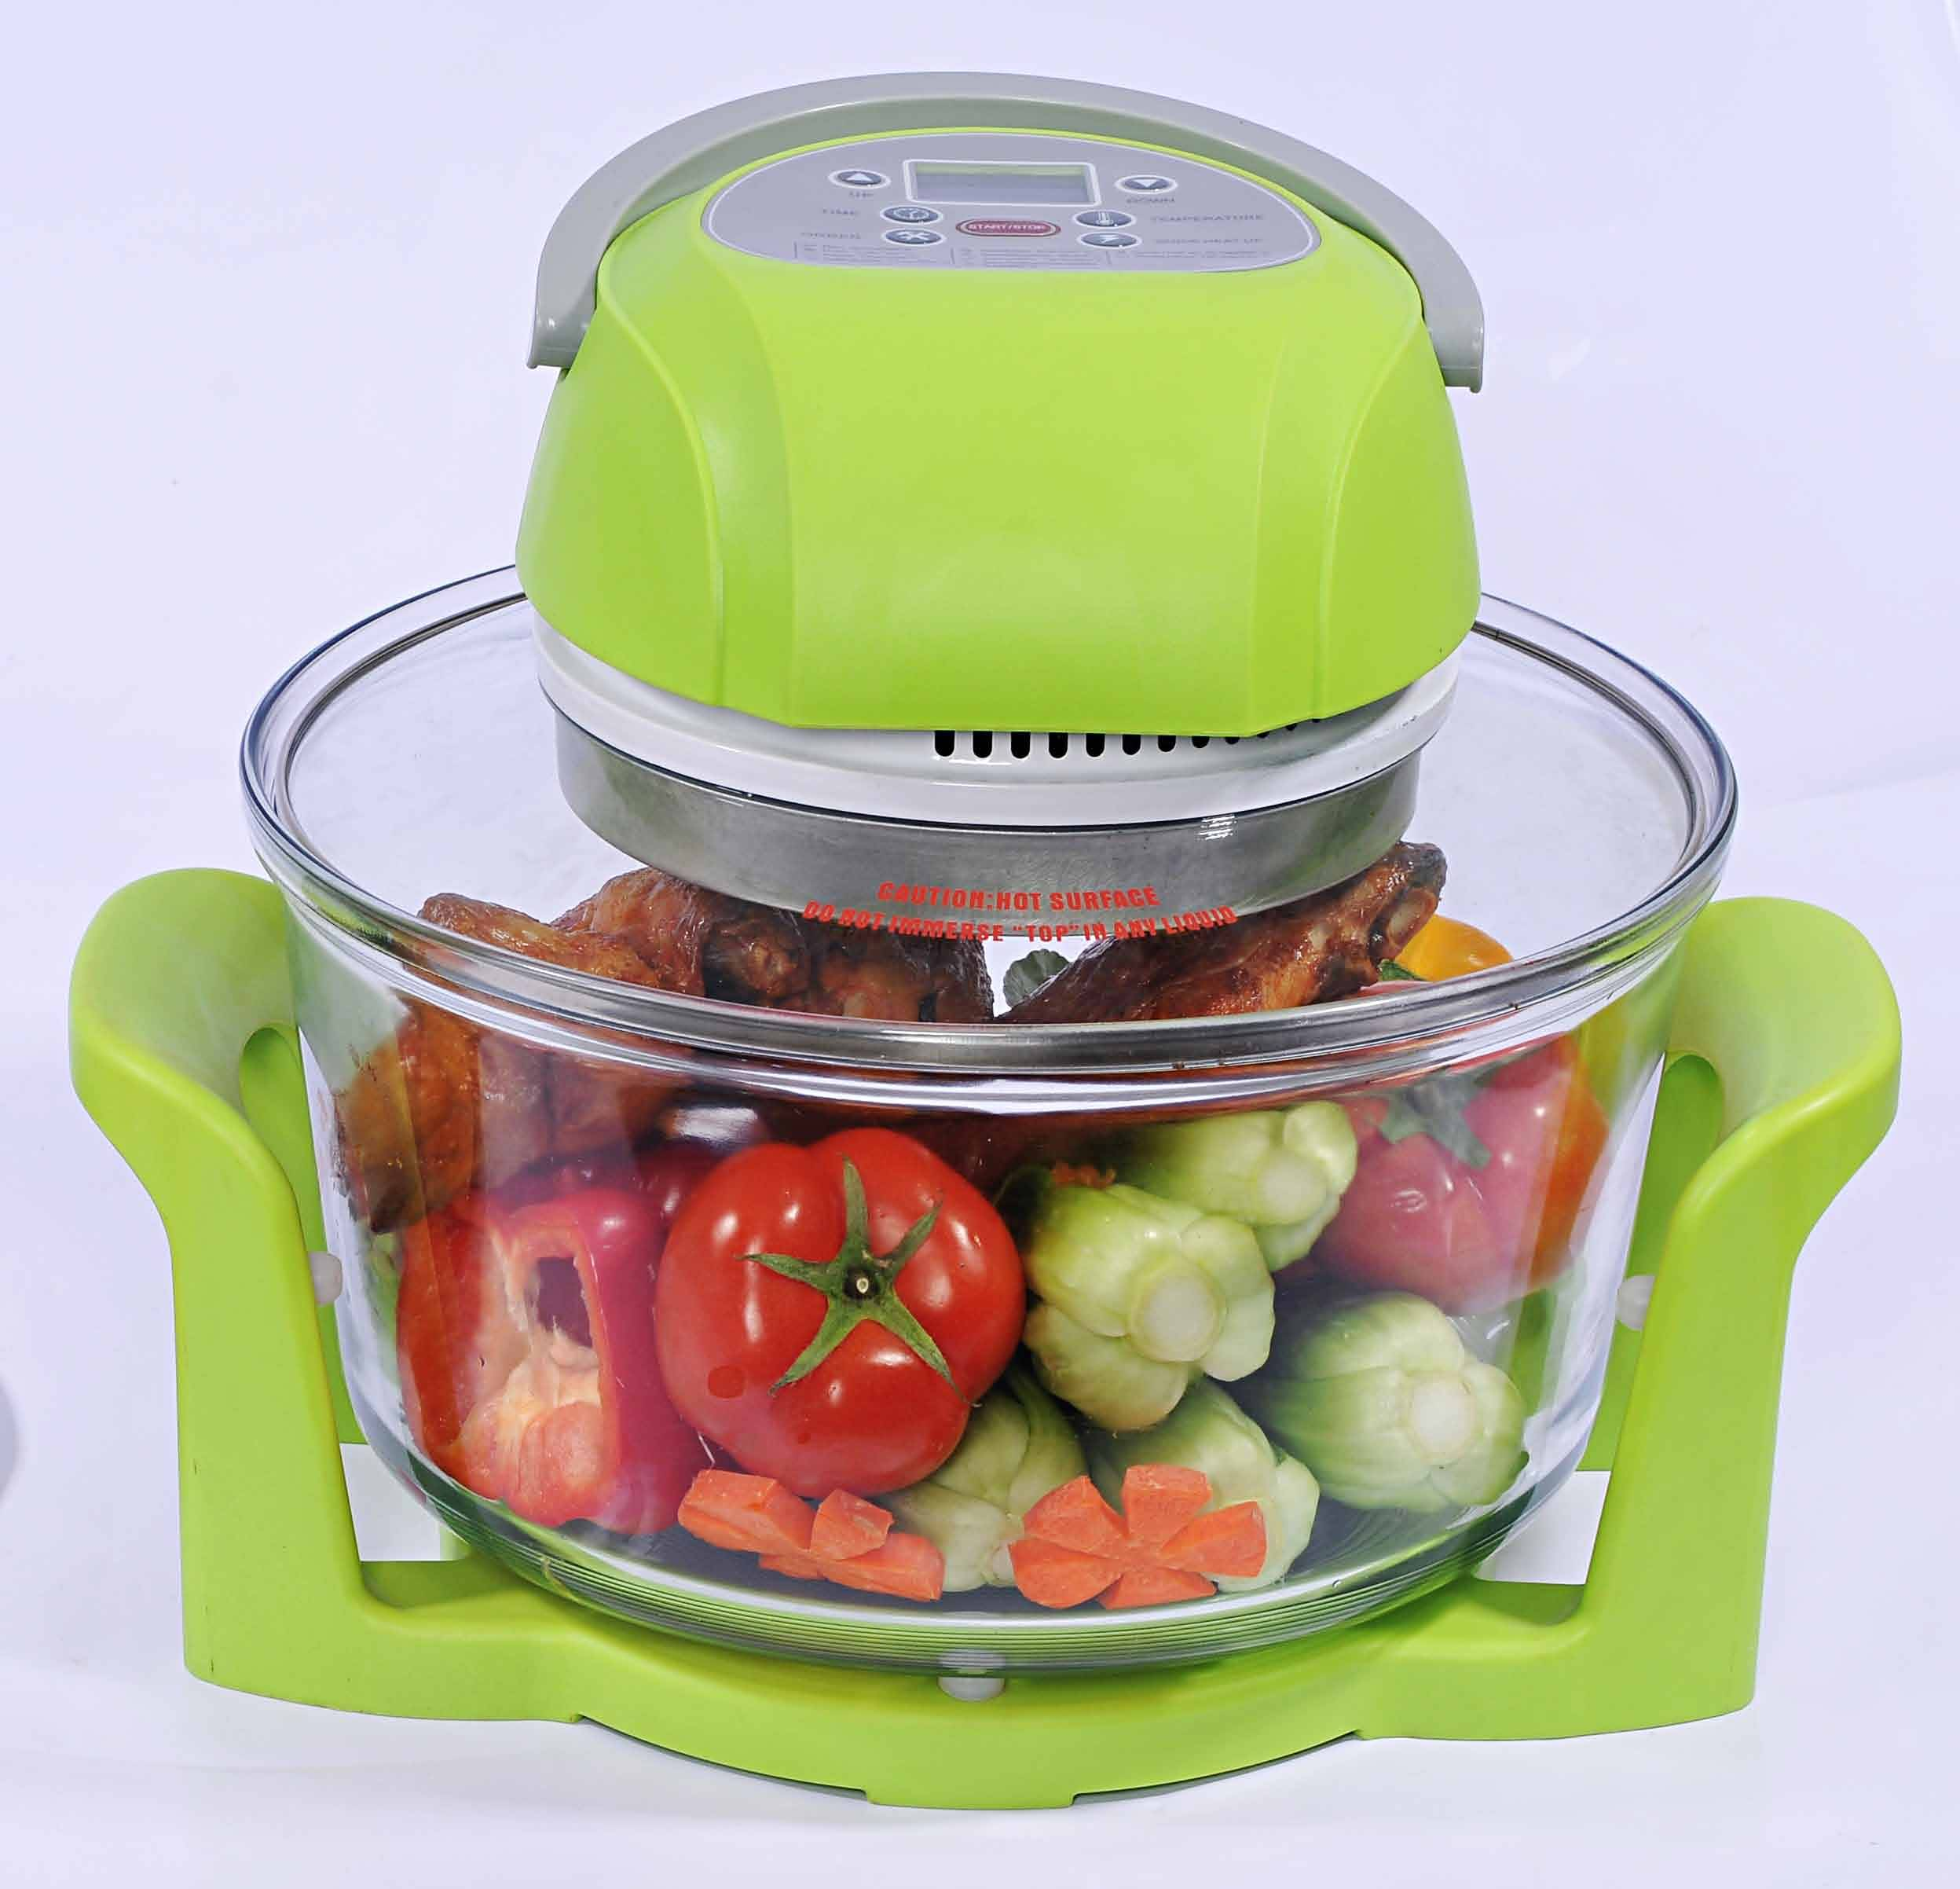 12L Multifunctional Digital Green Halogen Oven, CE/CB Approved, RoHS Directive-compliant KM-806B